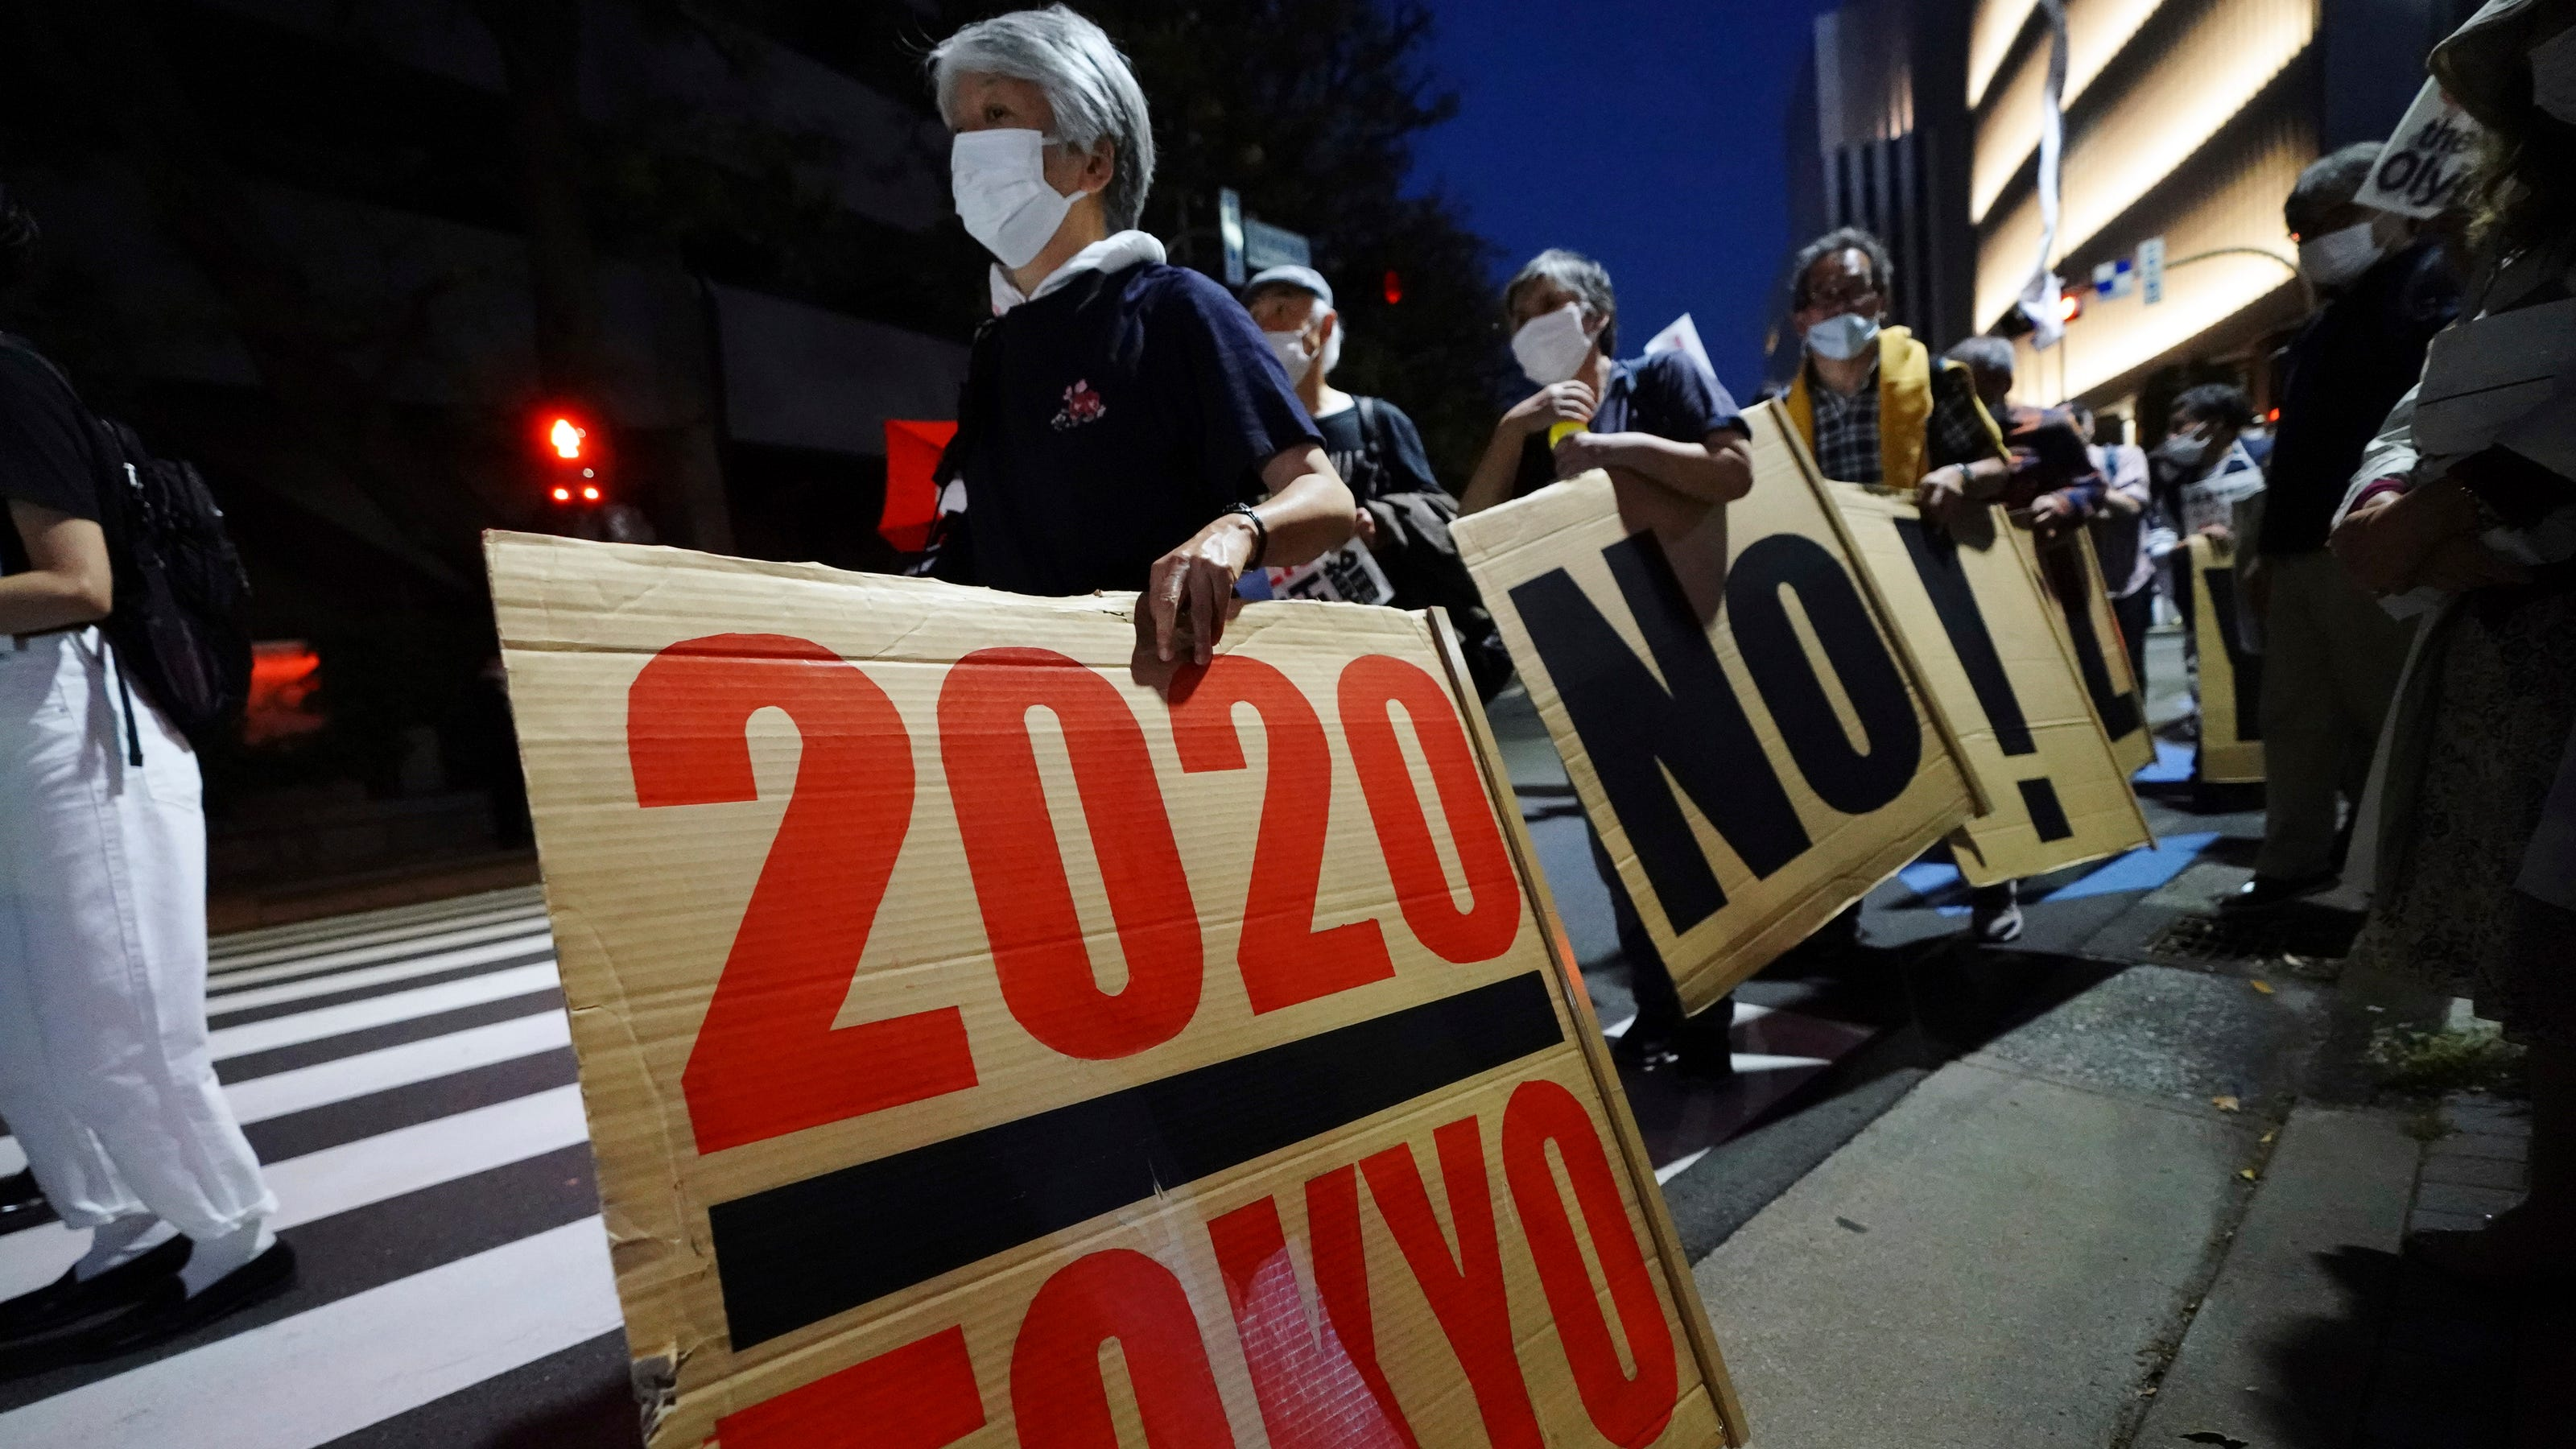 Japan added to 'do not travel' list amid COVID-19 surge: What we know about Tokyo Olympics